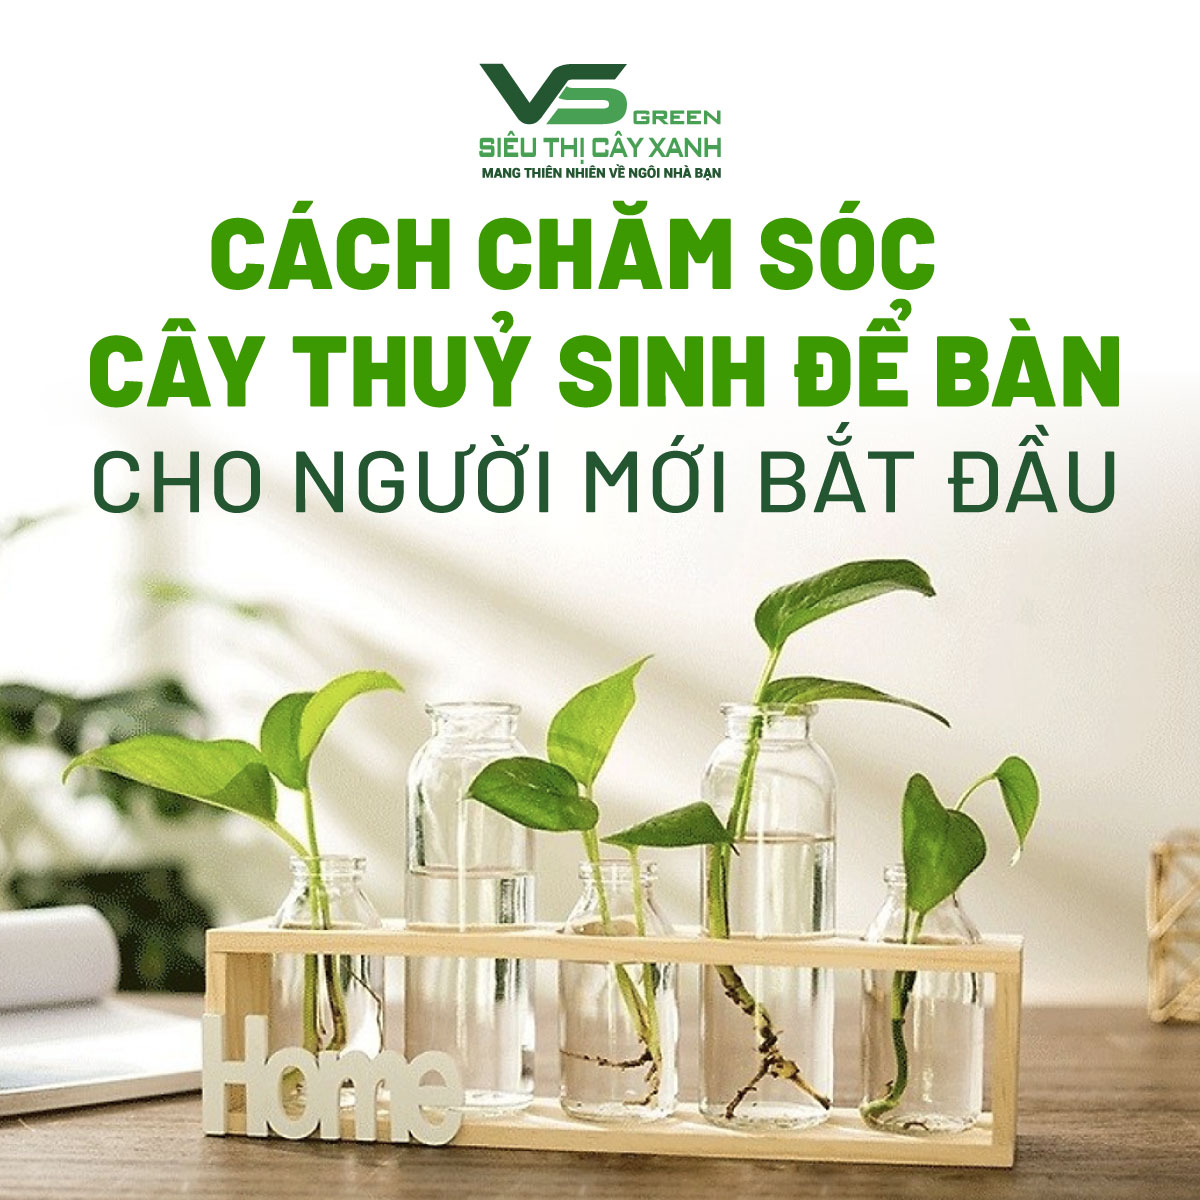 meo-cham-soc-cay-canh-thuy-sinh-de-ban